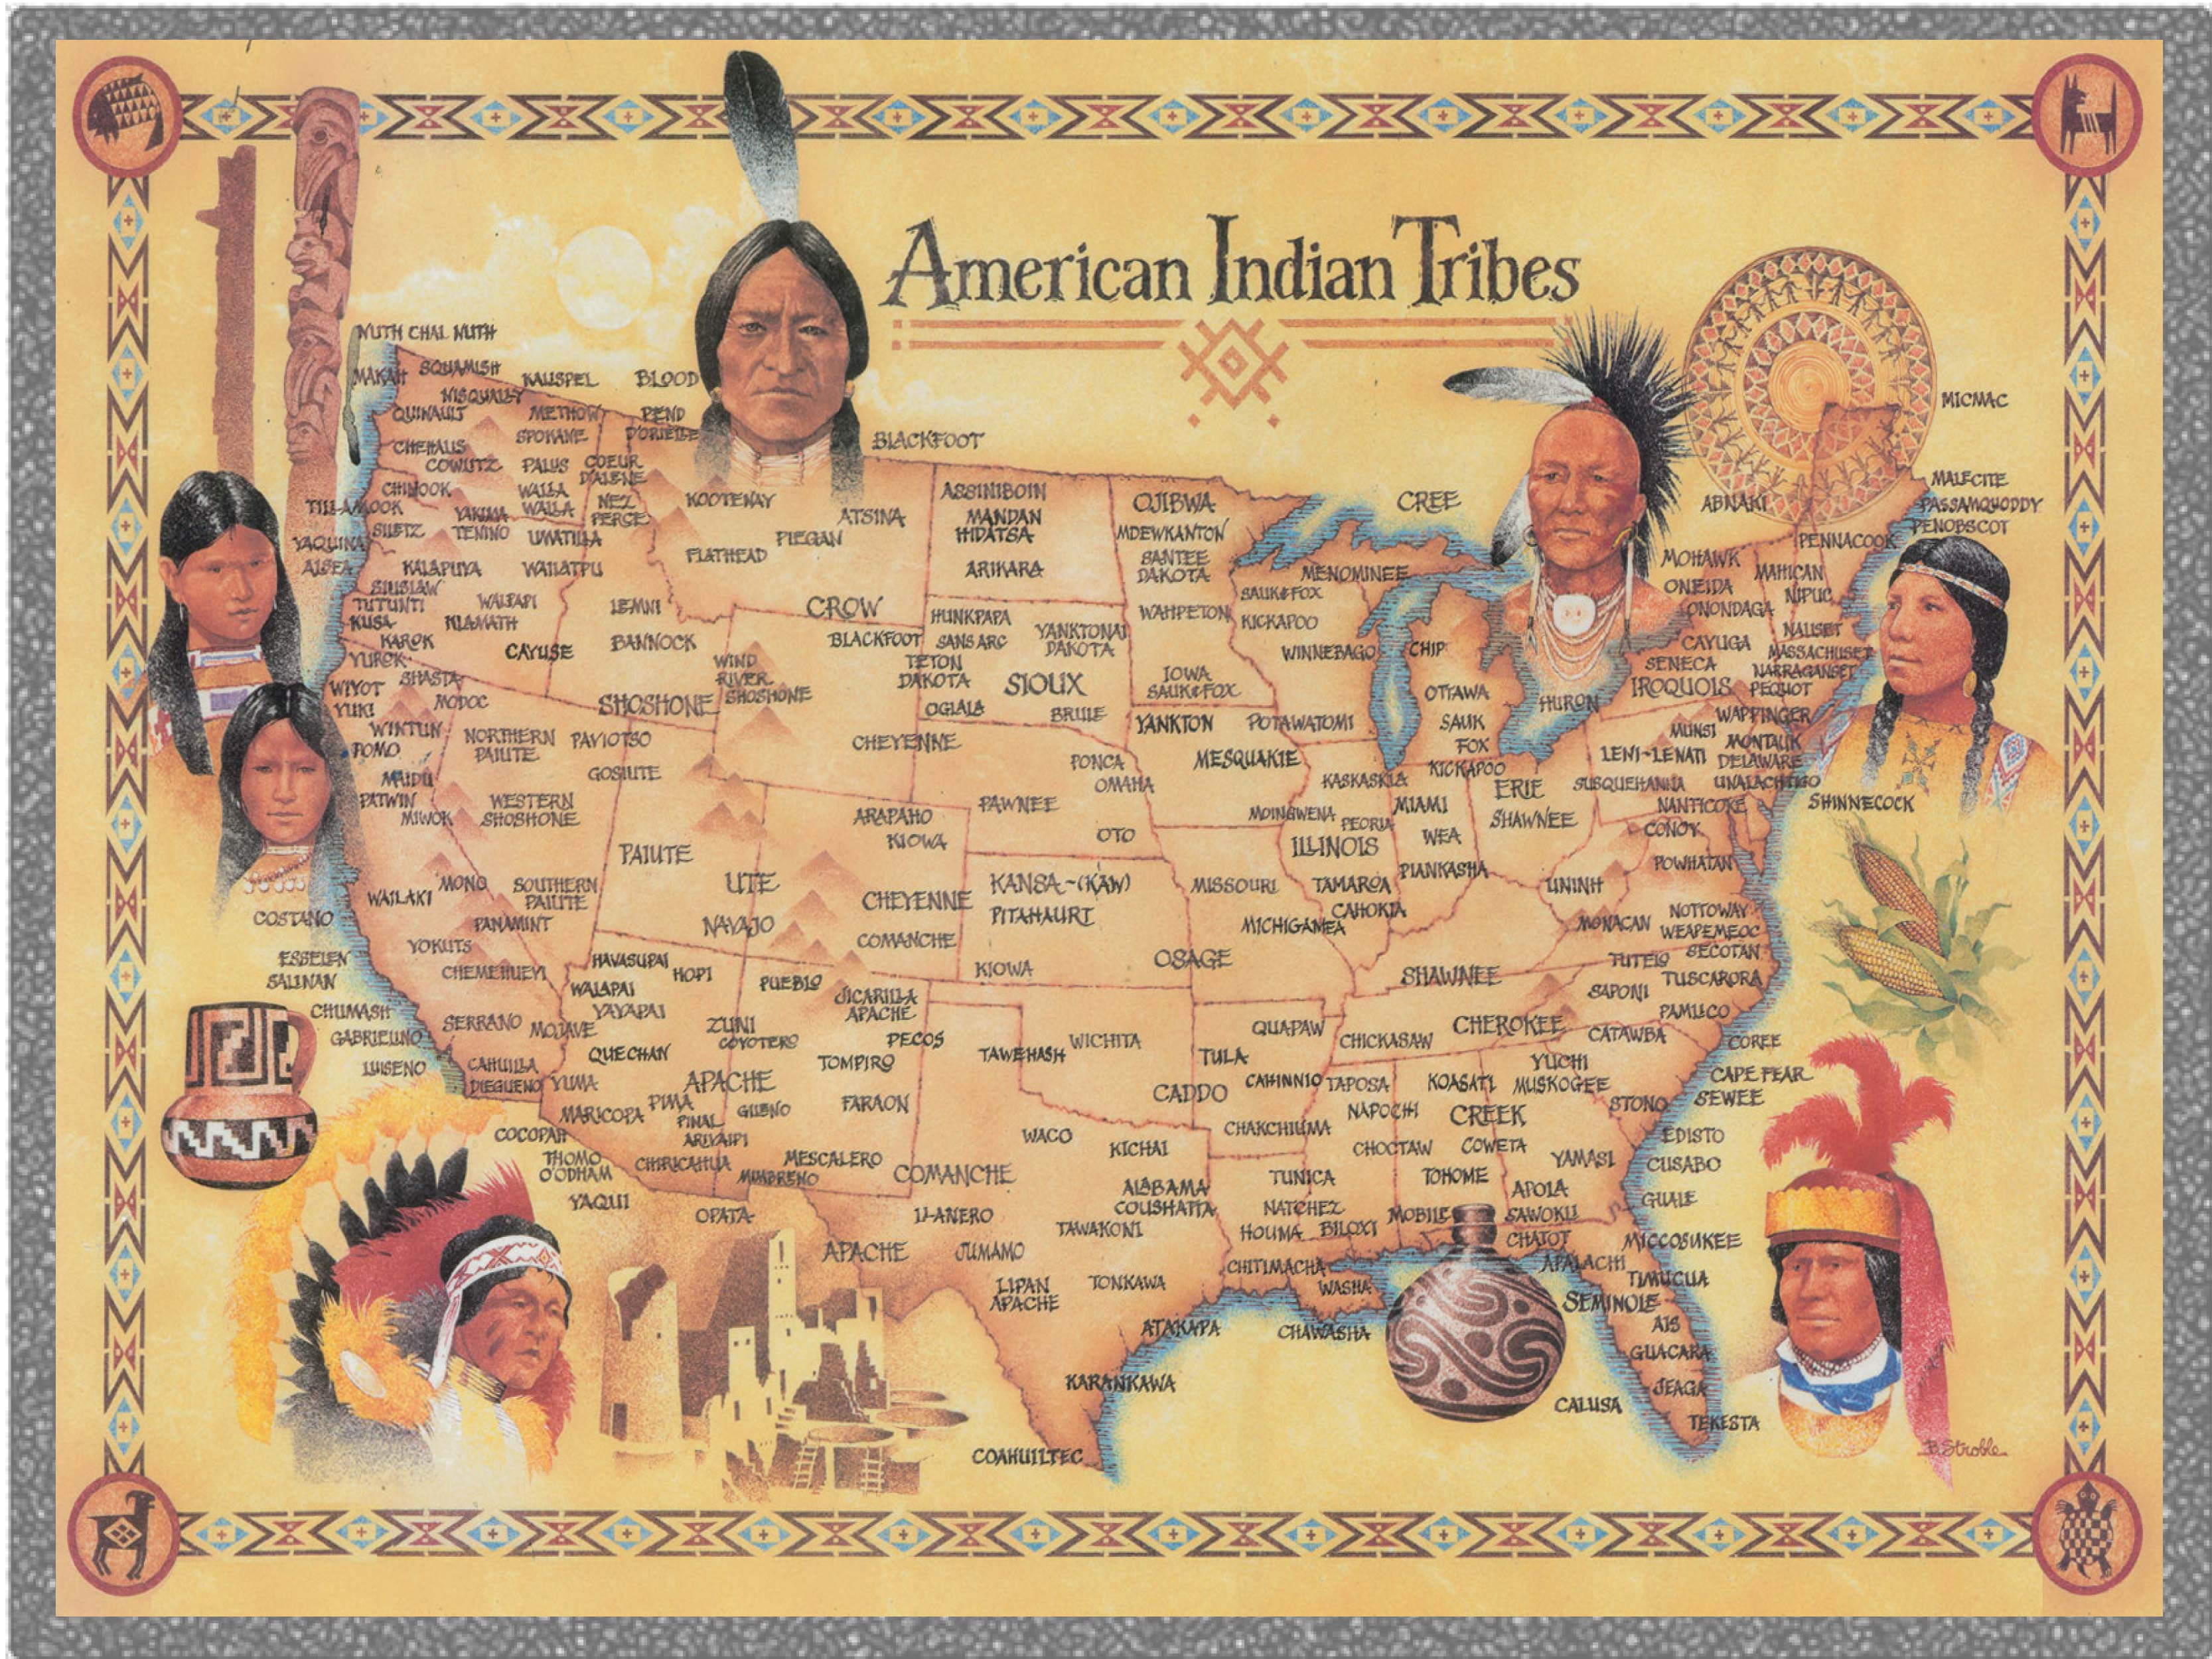 Celebrating Genocide – Christopher Columbus' Conquest of America - Map of North American Indian Tribal Territories at the time of Columbus' Arrival